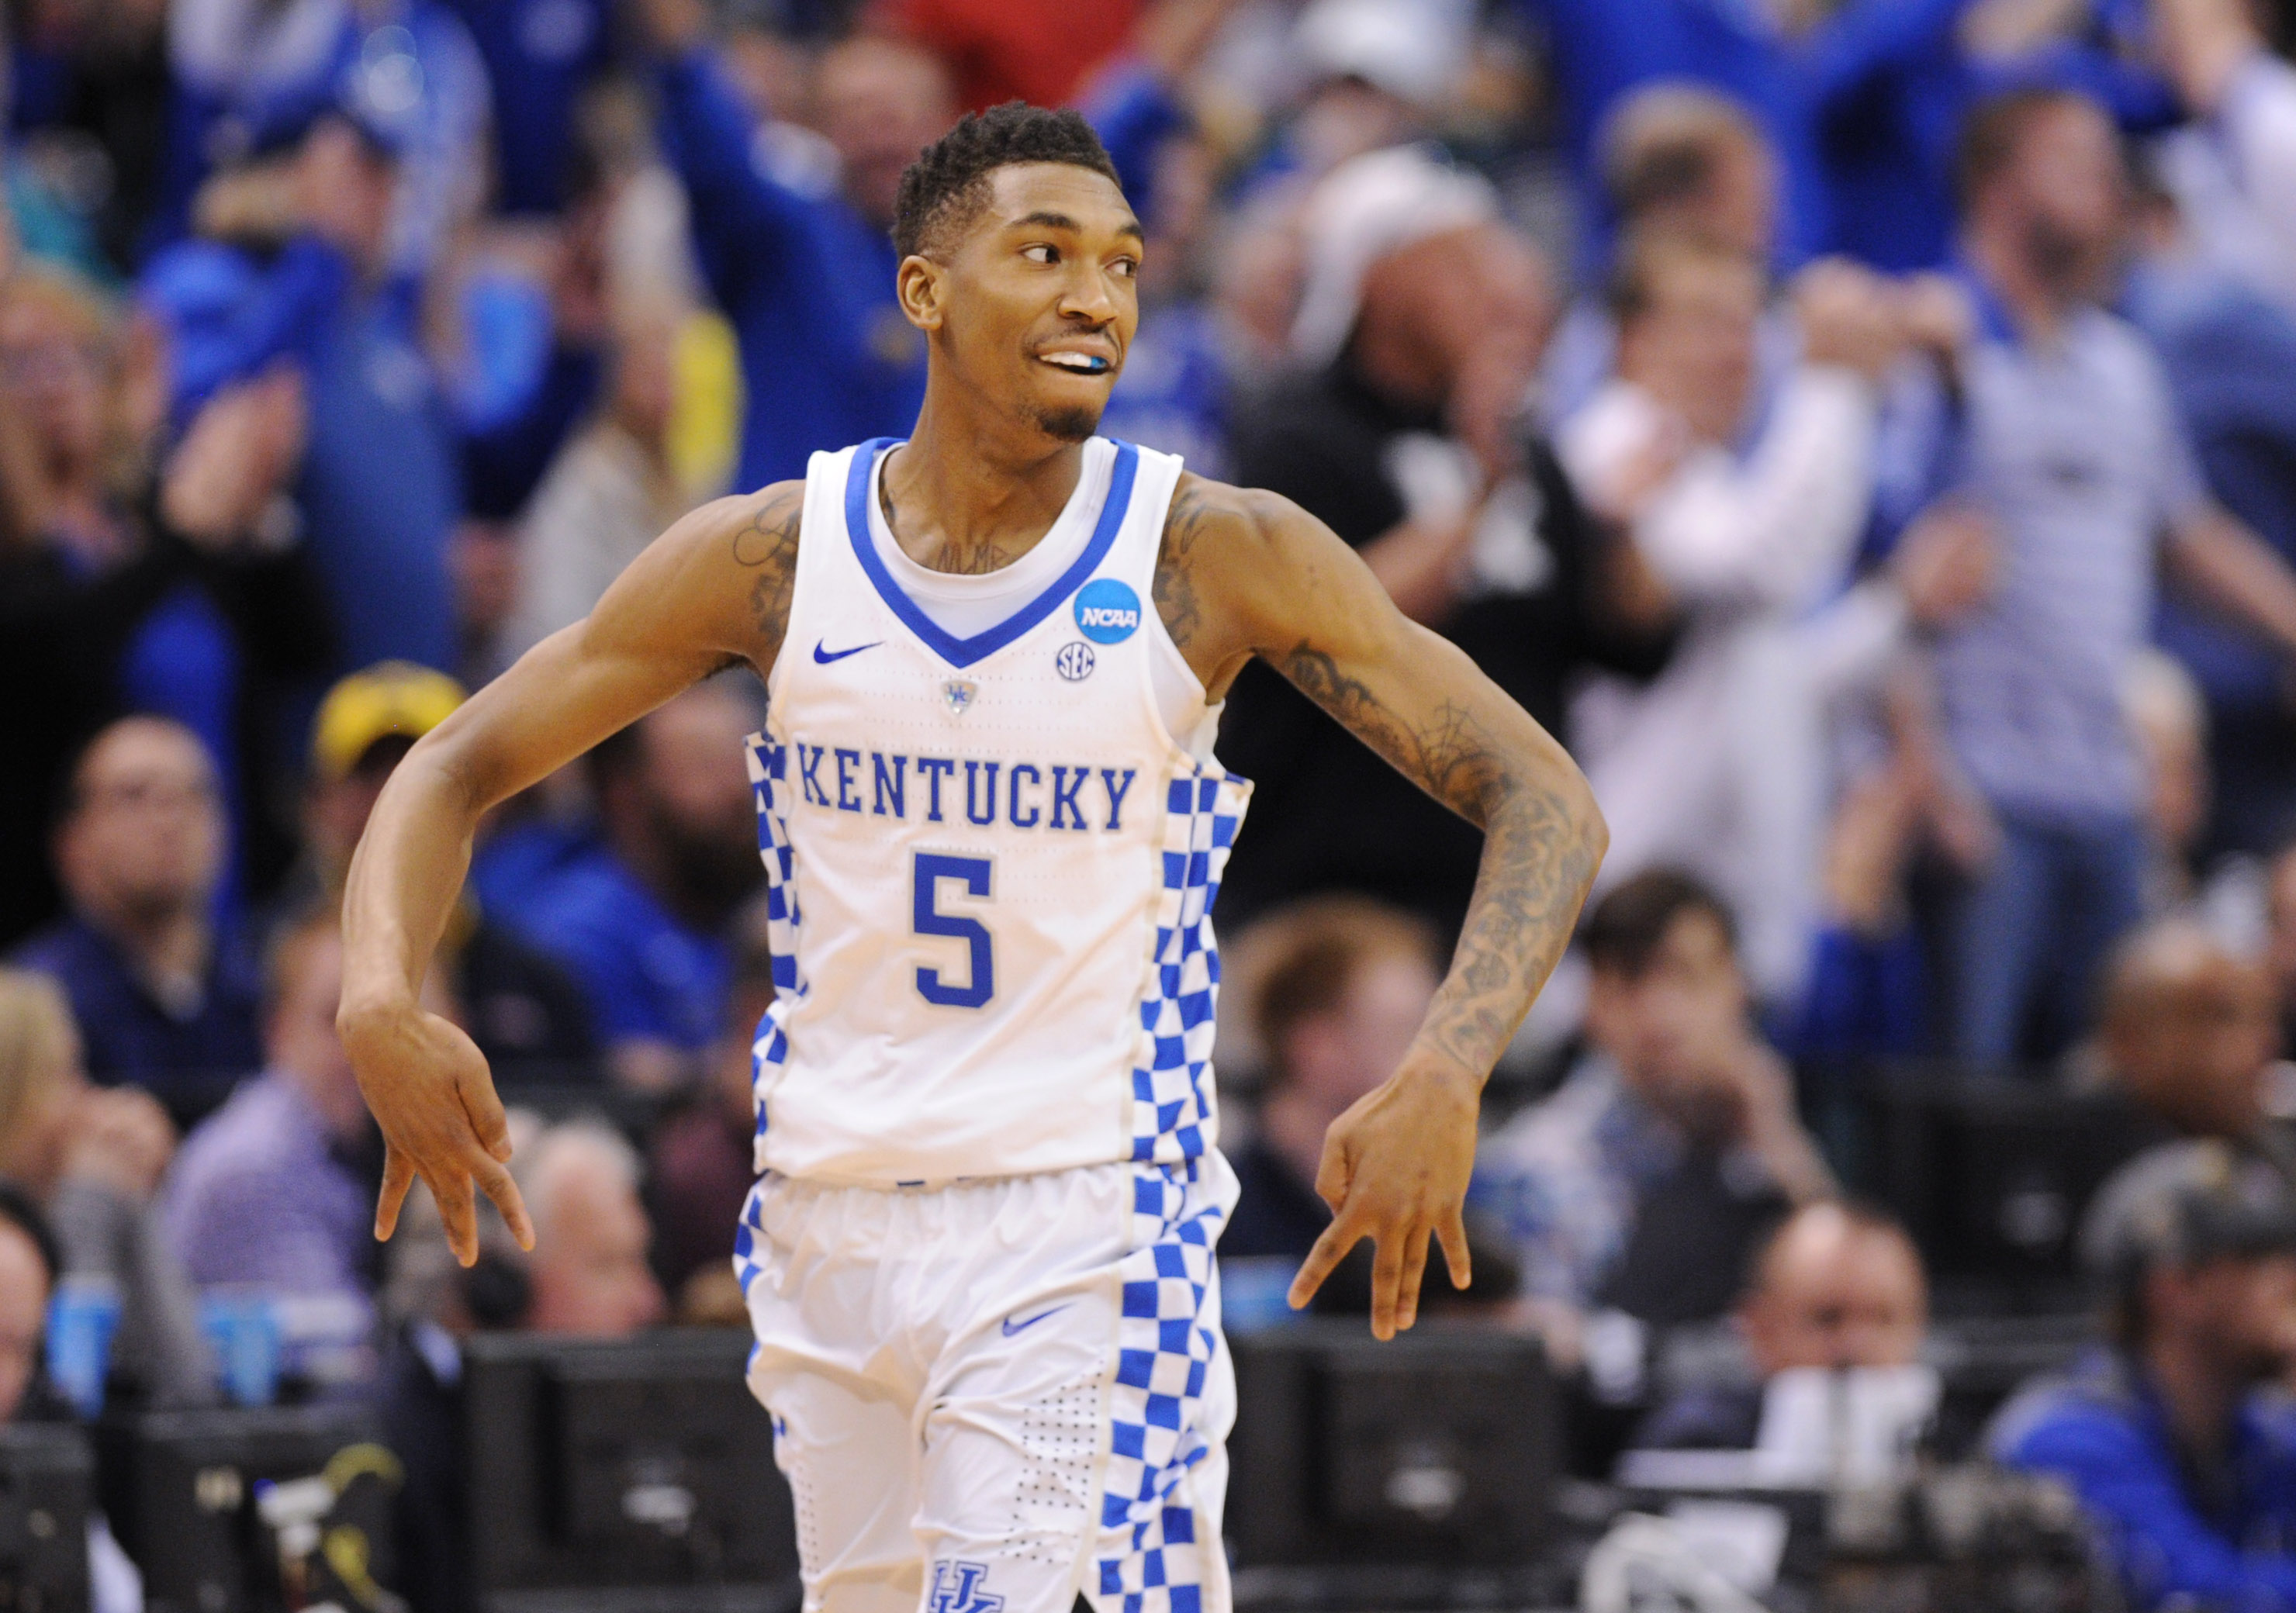 9958026-ncaa-basketball-ncaa-tournament-second-round-kentucky-vs-wichita-state-1